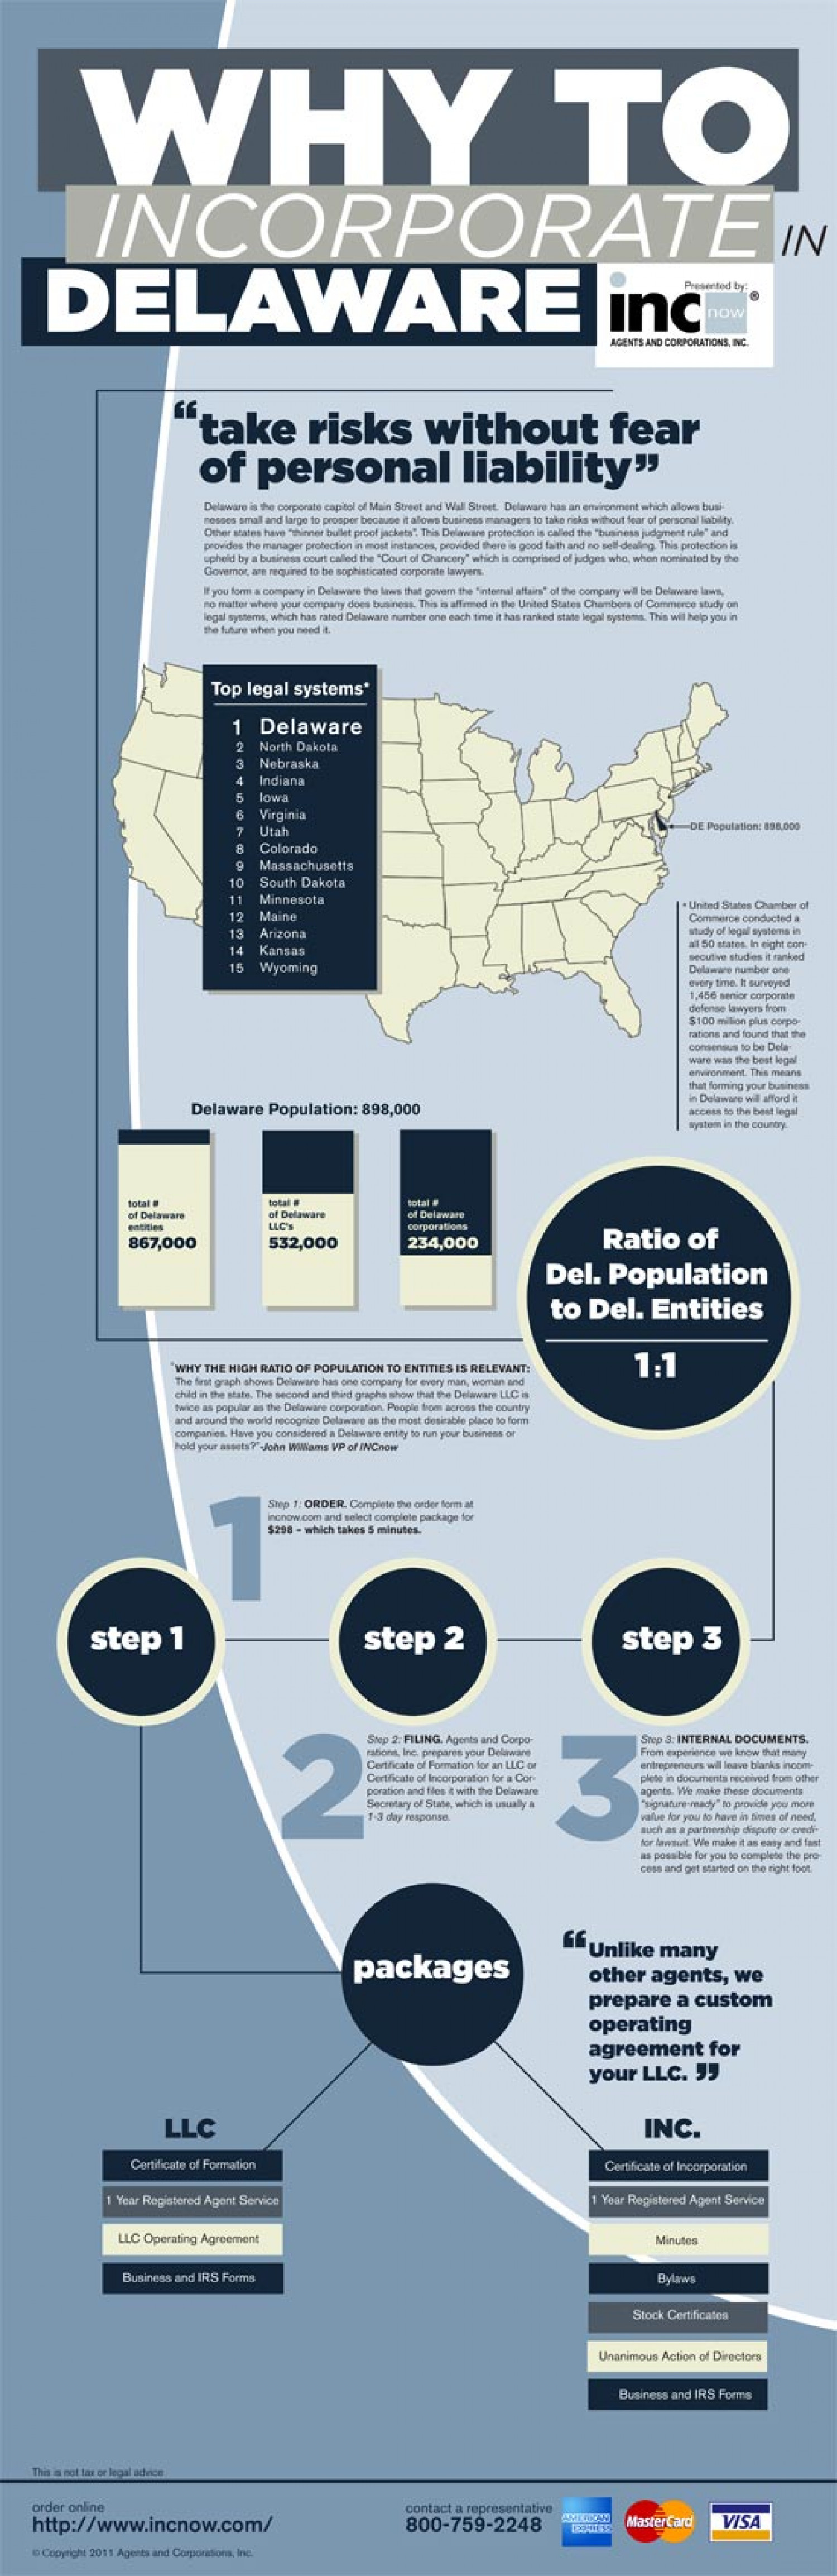 Why Incorporate in Delaware? (Don't Listen to the New York Times...They are wrong.) Infographic